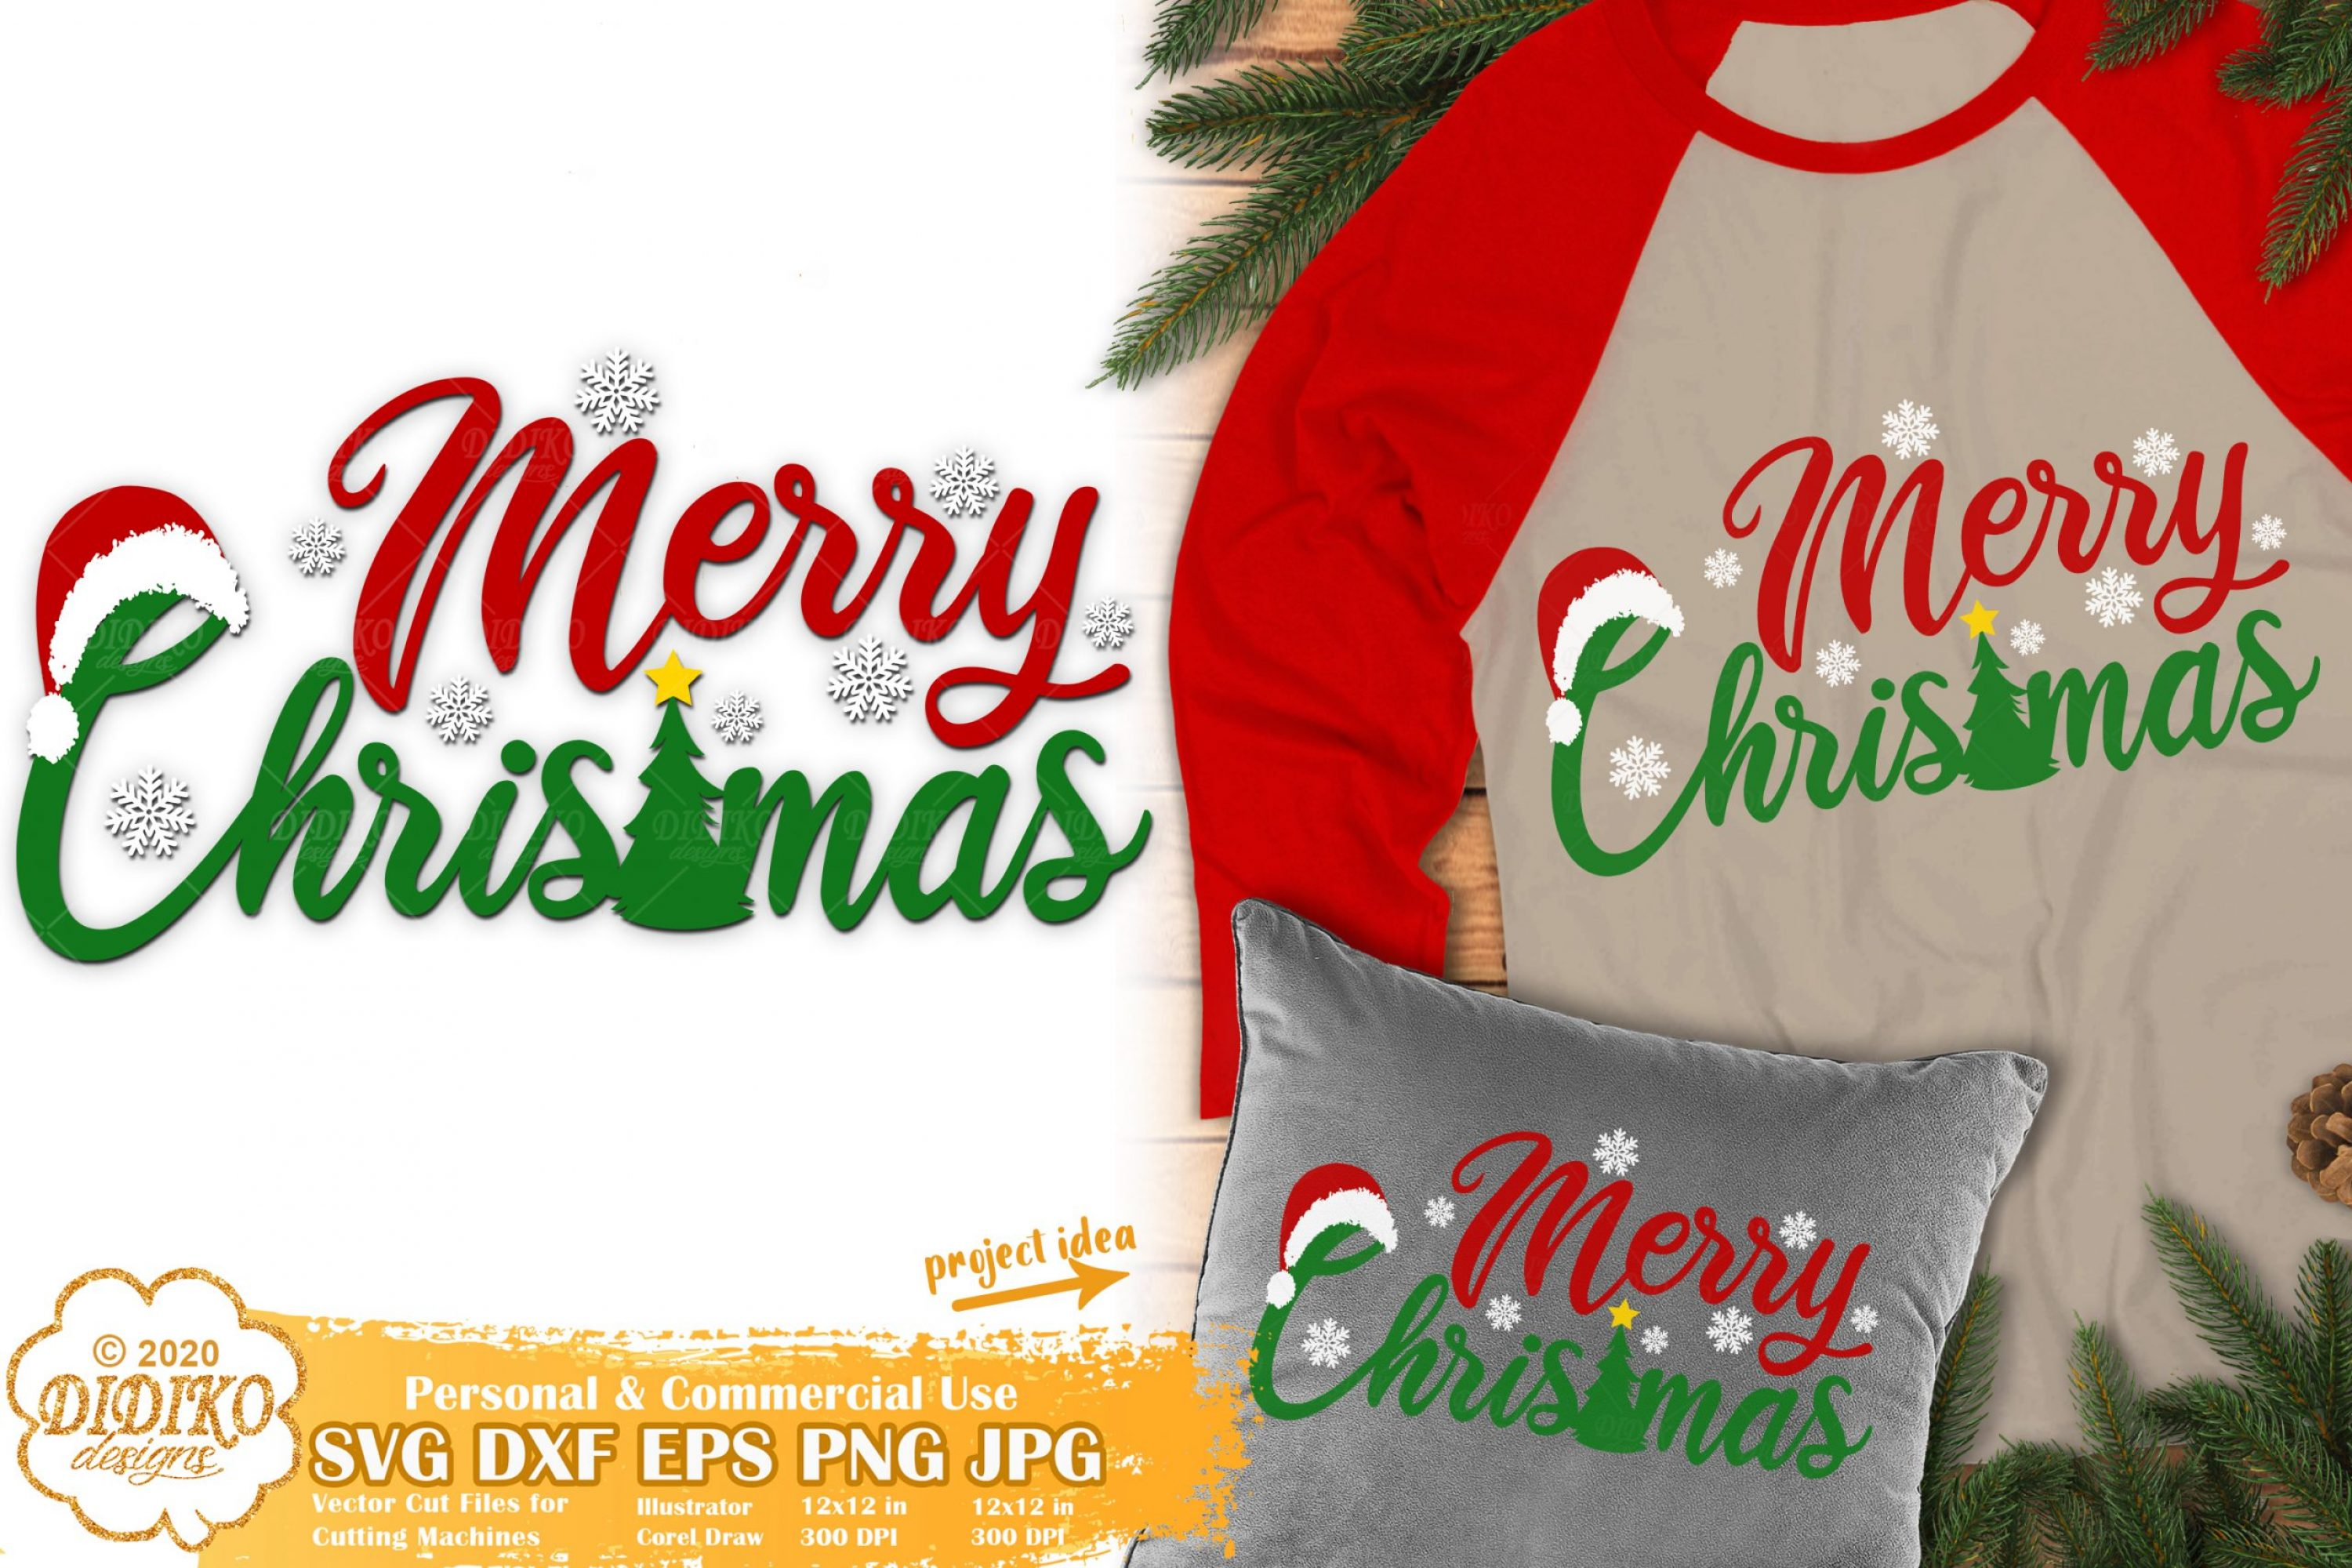 Merry Christmas SVG | Christmas Svg | Merry and Bright